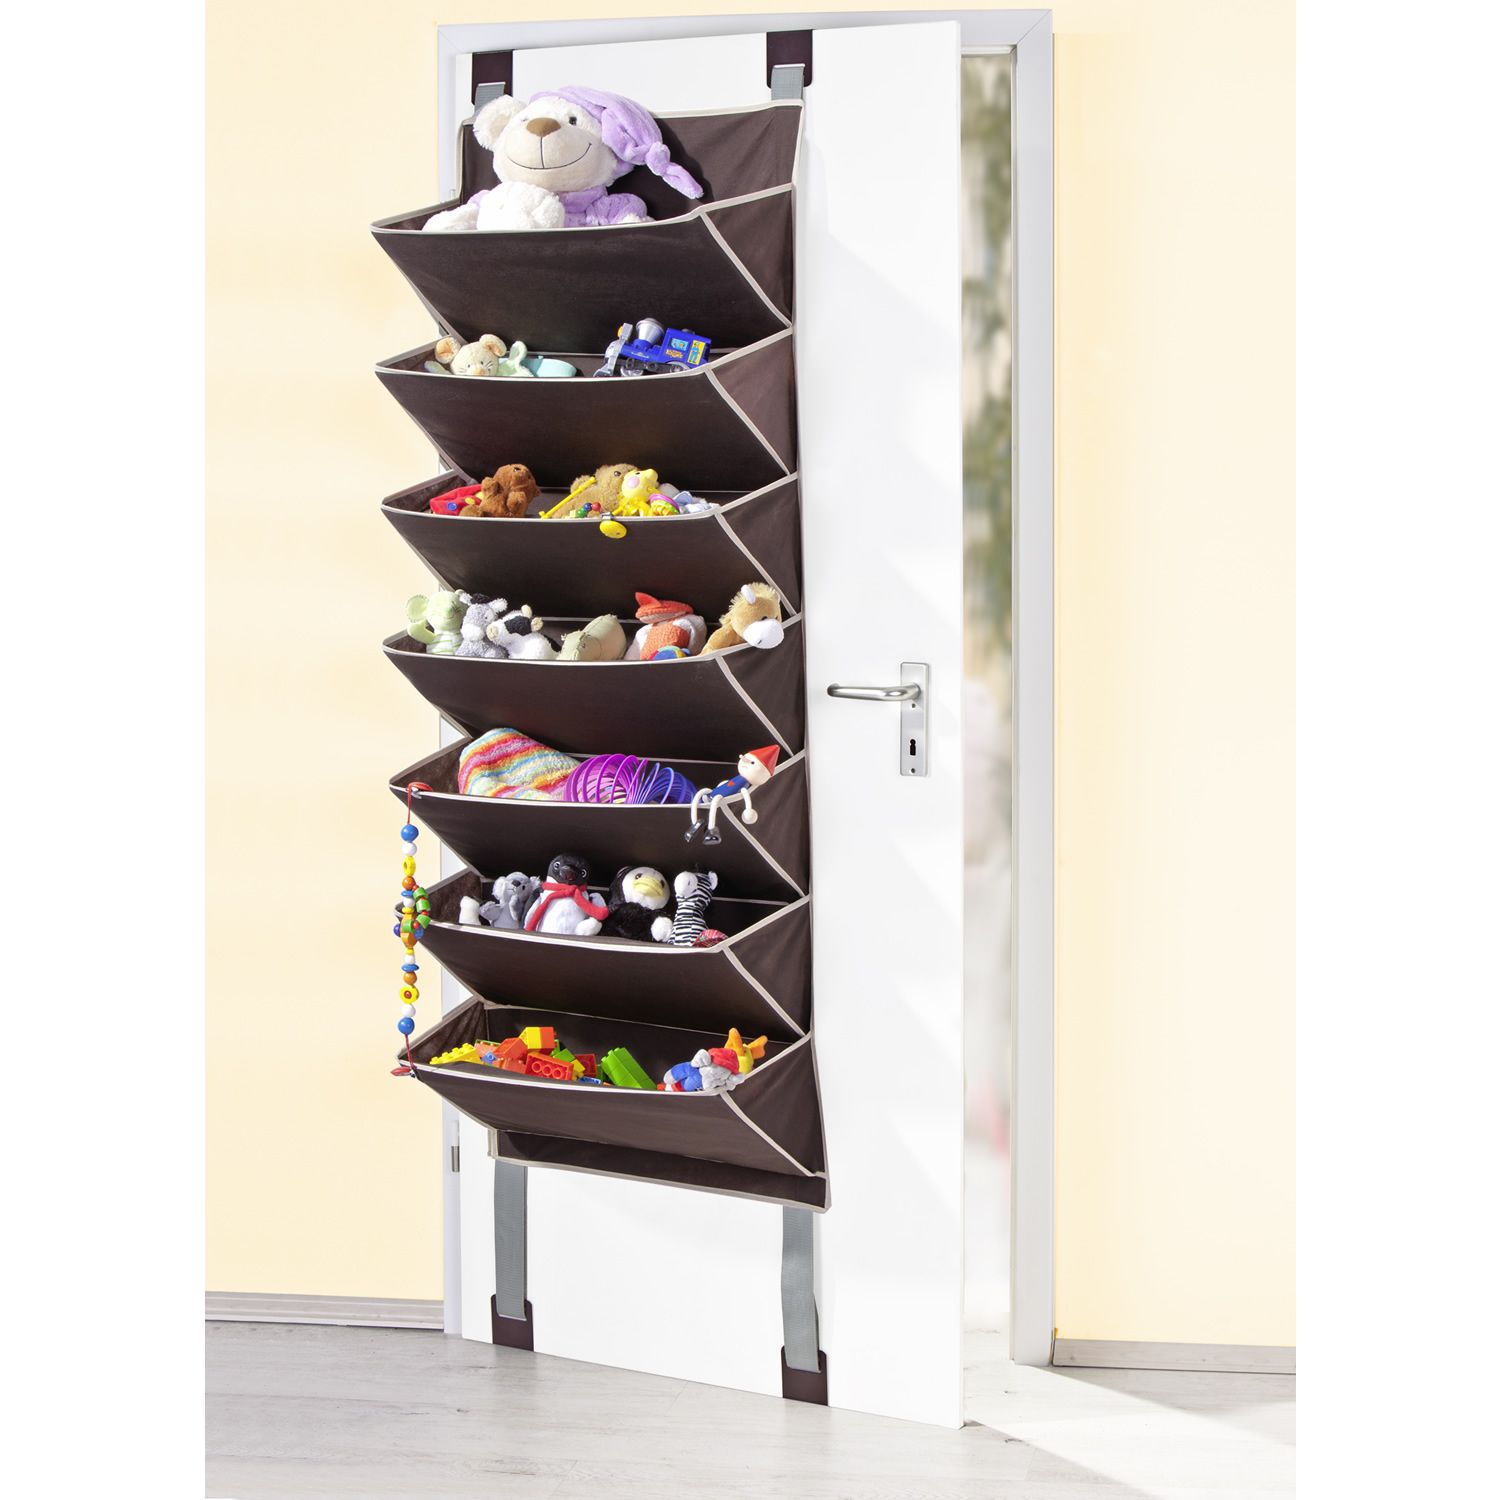 Interior Furniture Wall Mounted Entryway Toy Storage Combined With Shoe Design For Little S Ideas